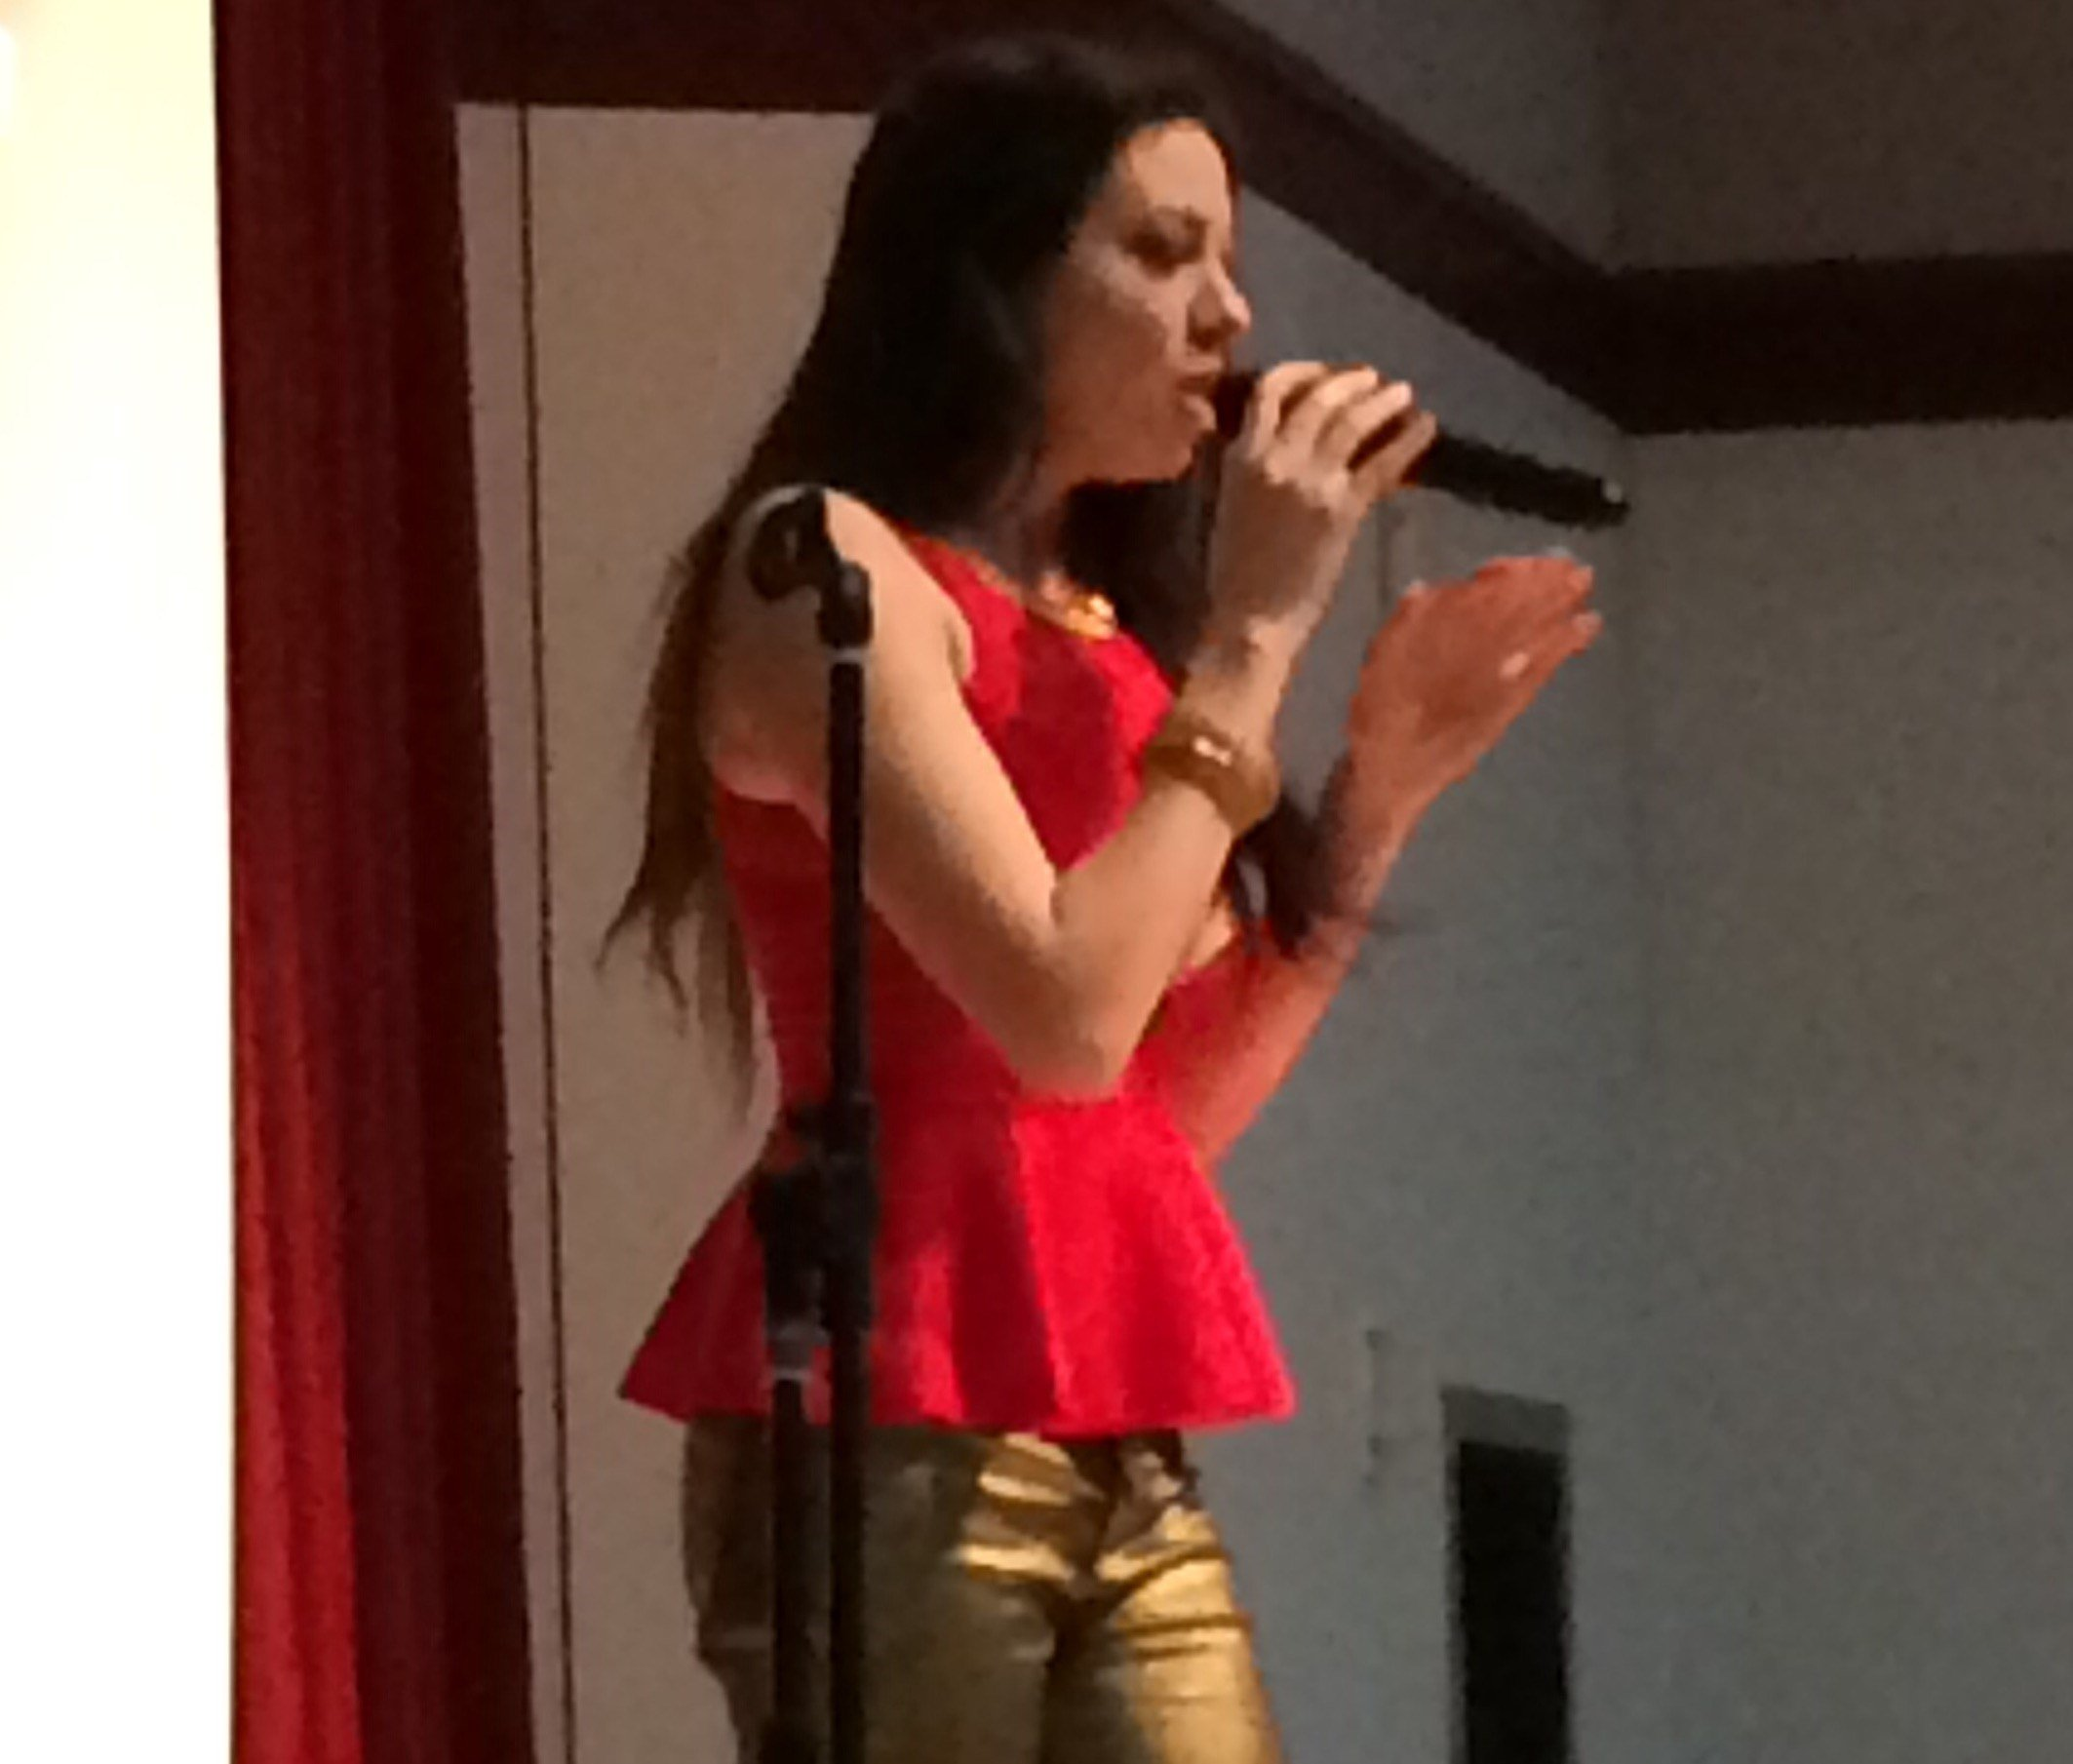 Meredith O'Connor performs at Paso Robles Middle School. (KSBY)